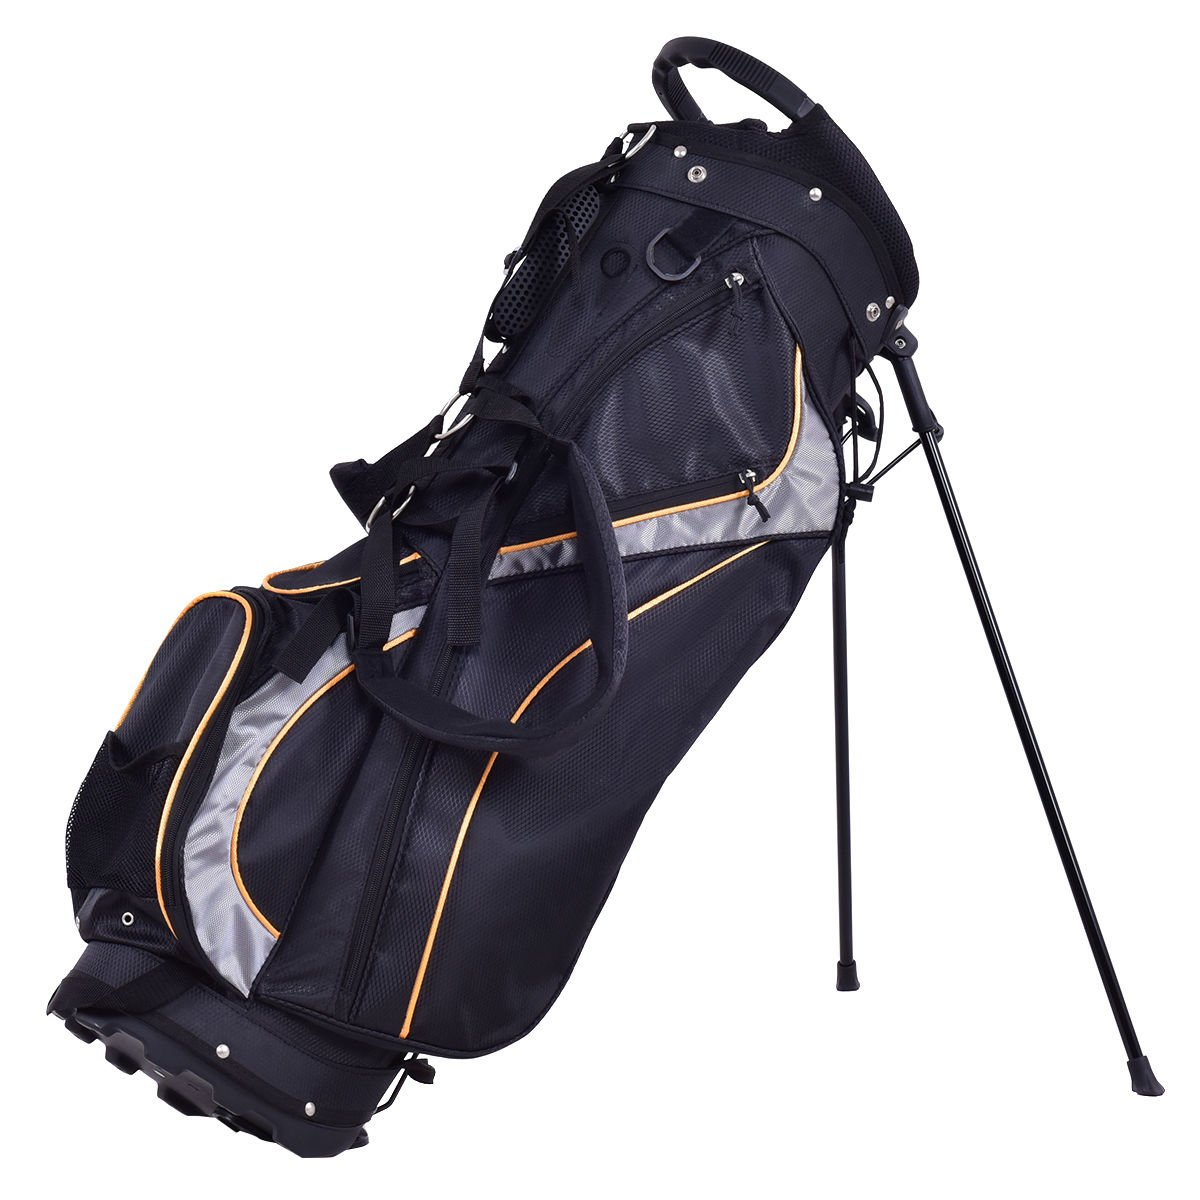 GHP Black Polyester Fabric 7-Way Divider 9'' Padded Golf Stand Bag with Shoulder Strap by Globe House Products (Image #1)